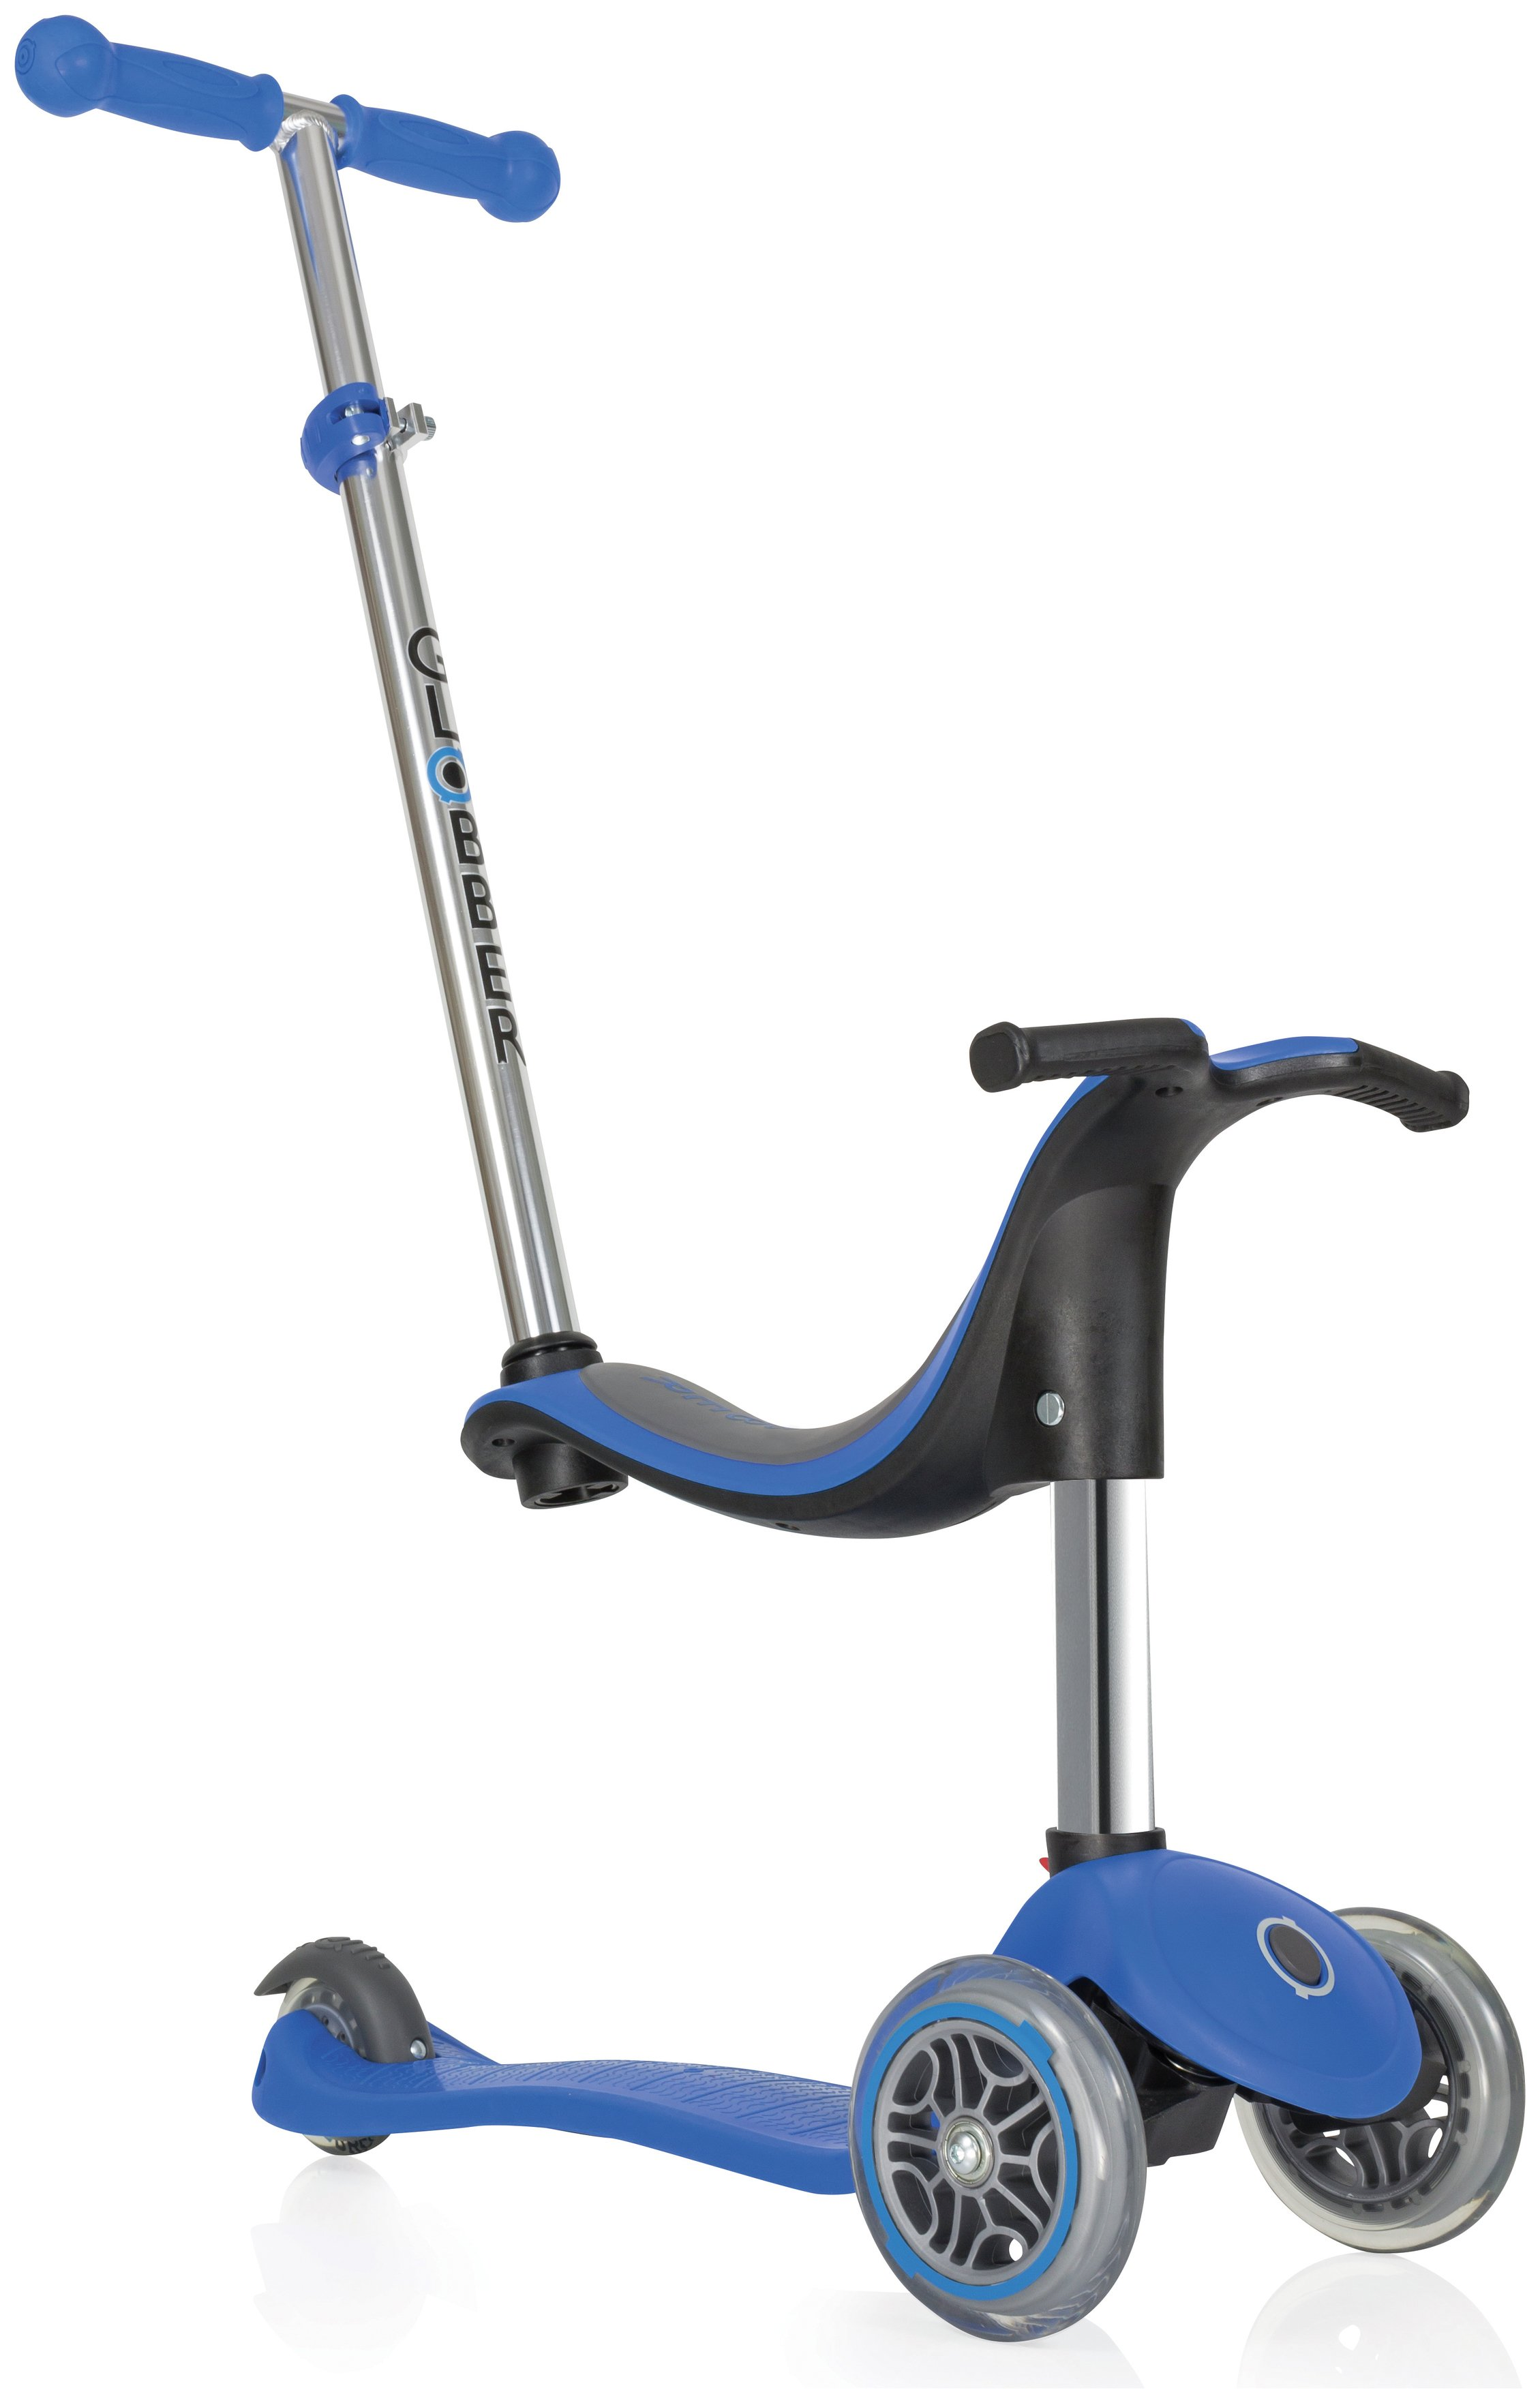 Globber Evo 4-in-1 3 Wheel Scooter - Navy Blue